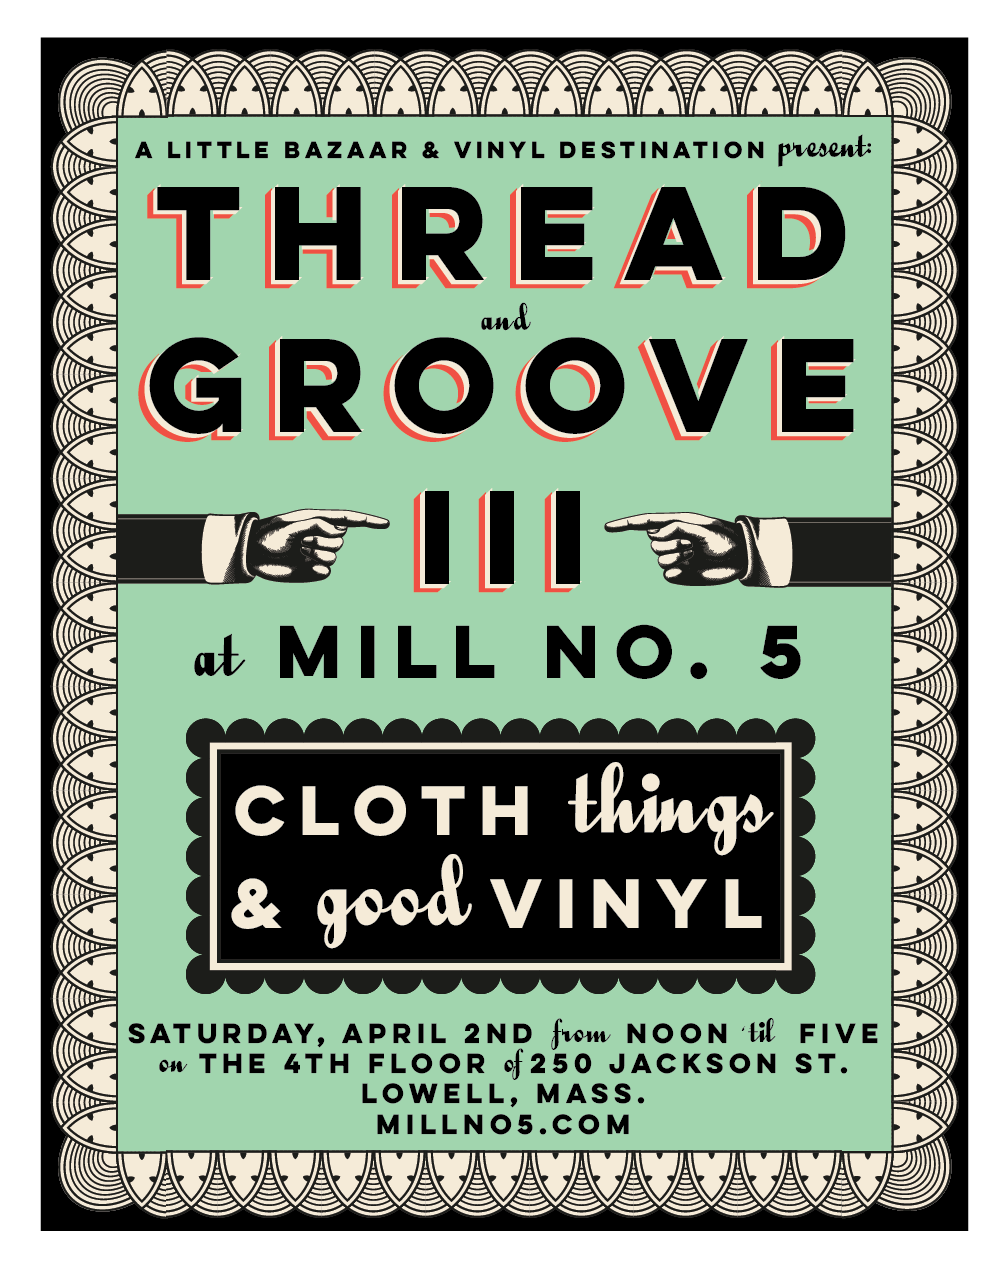 thread&groove3